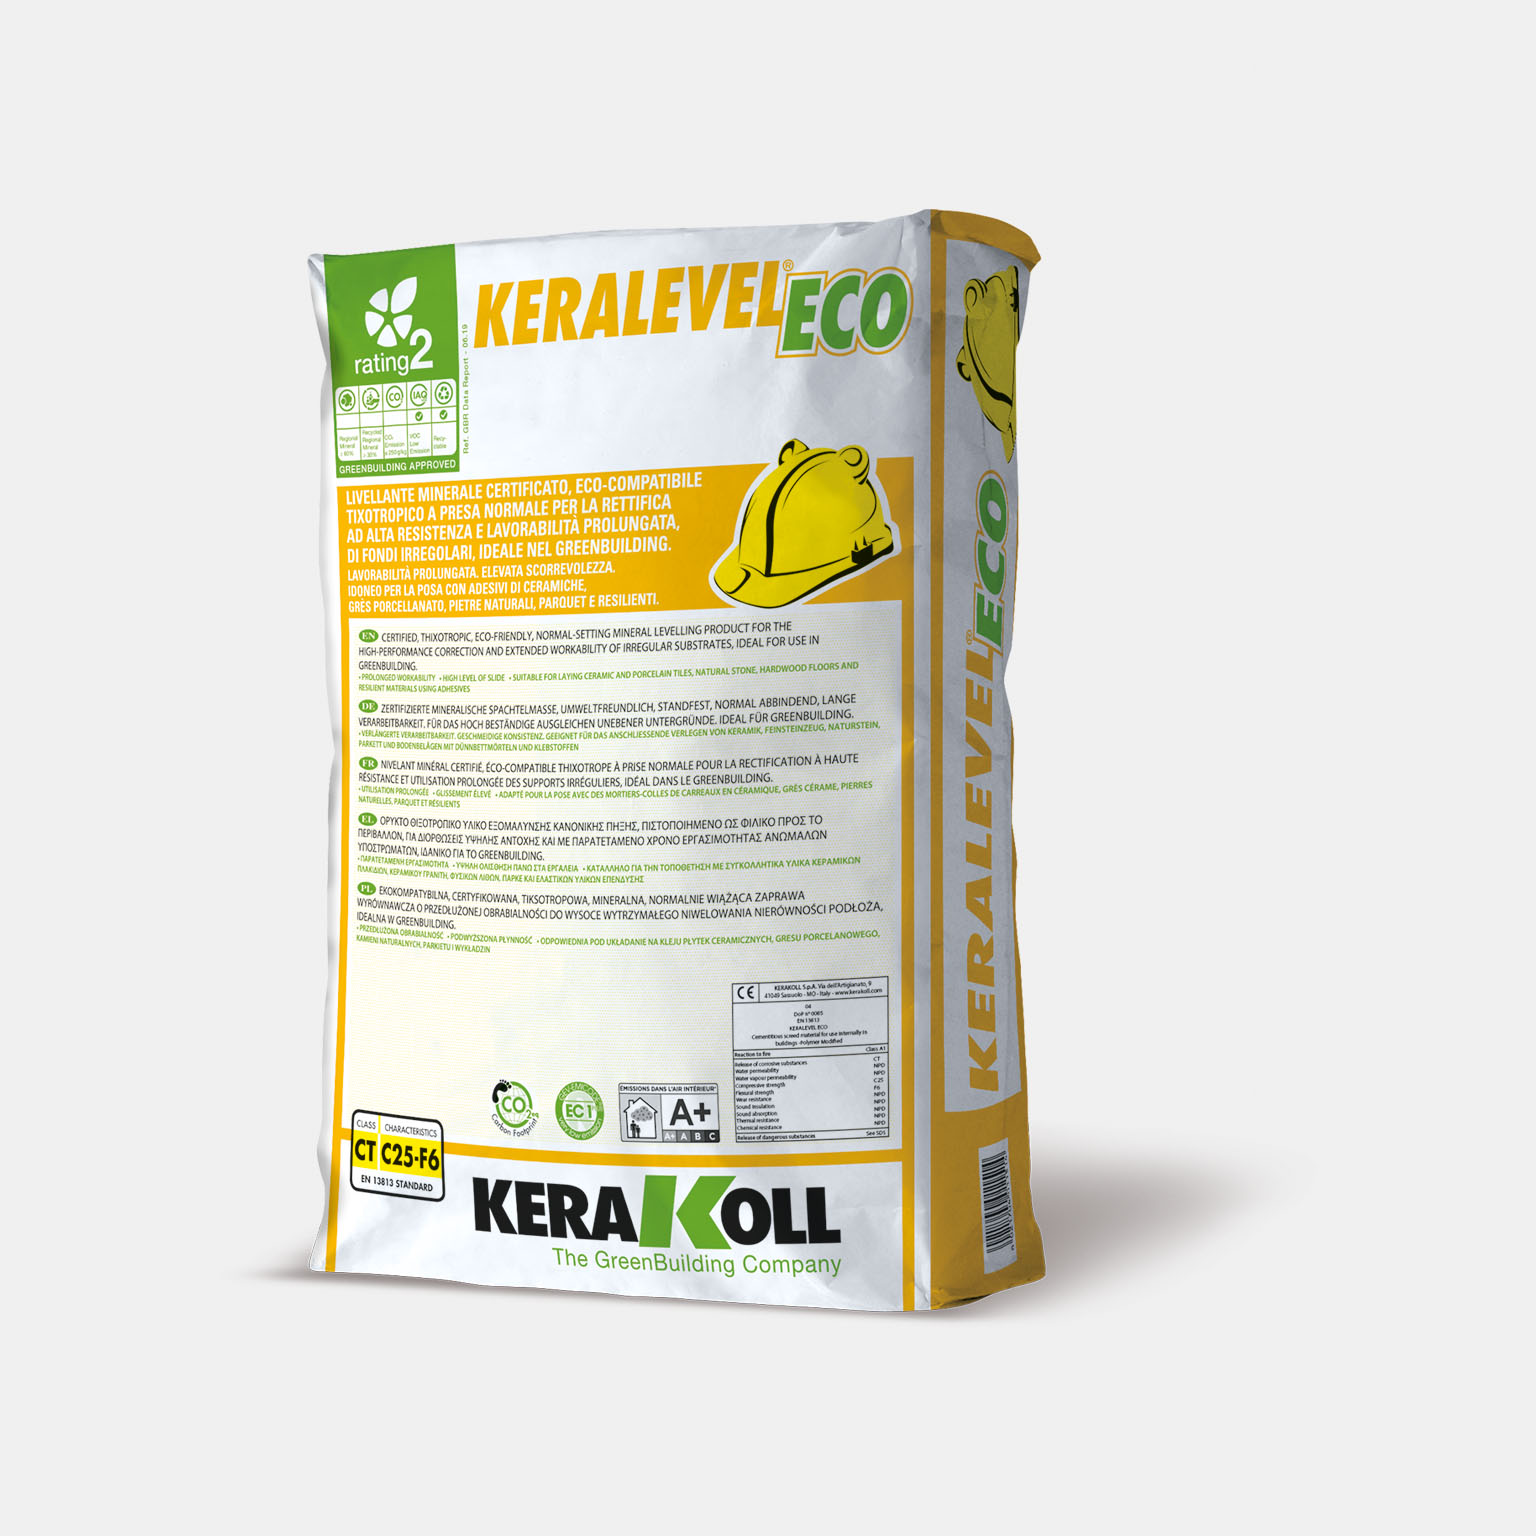 Keralevel Eco - immagine pack